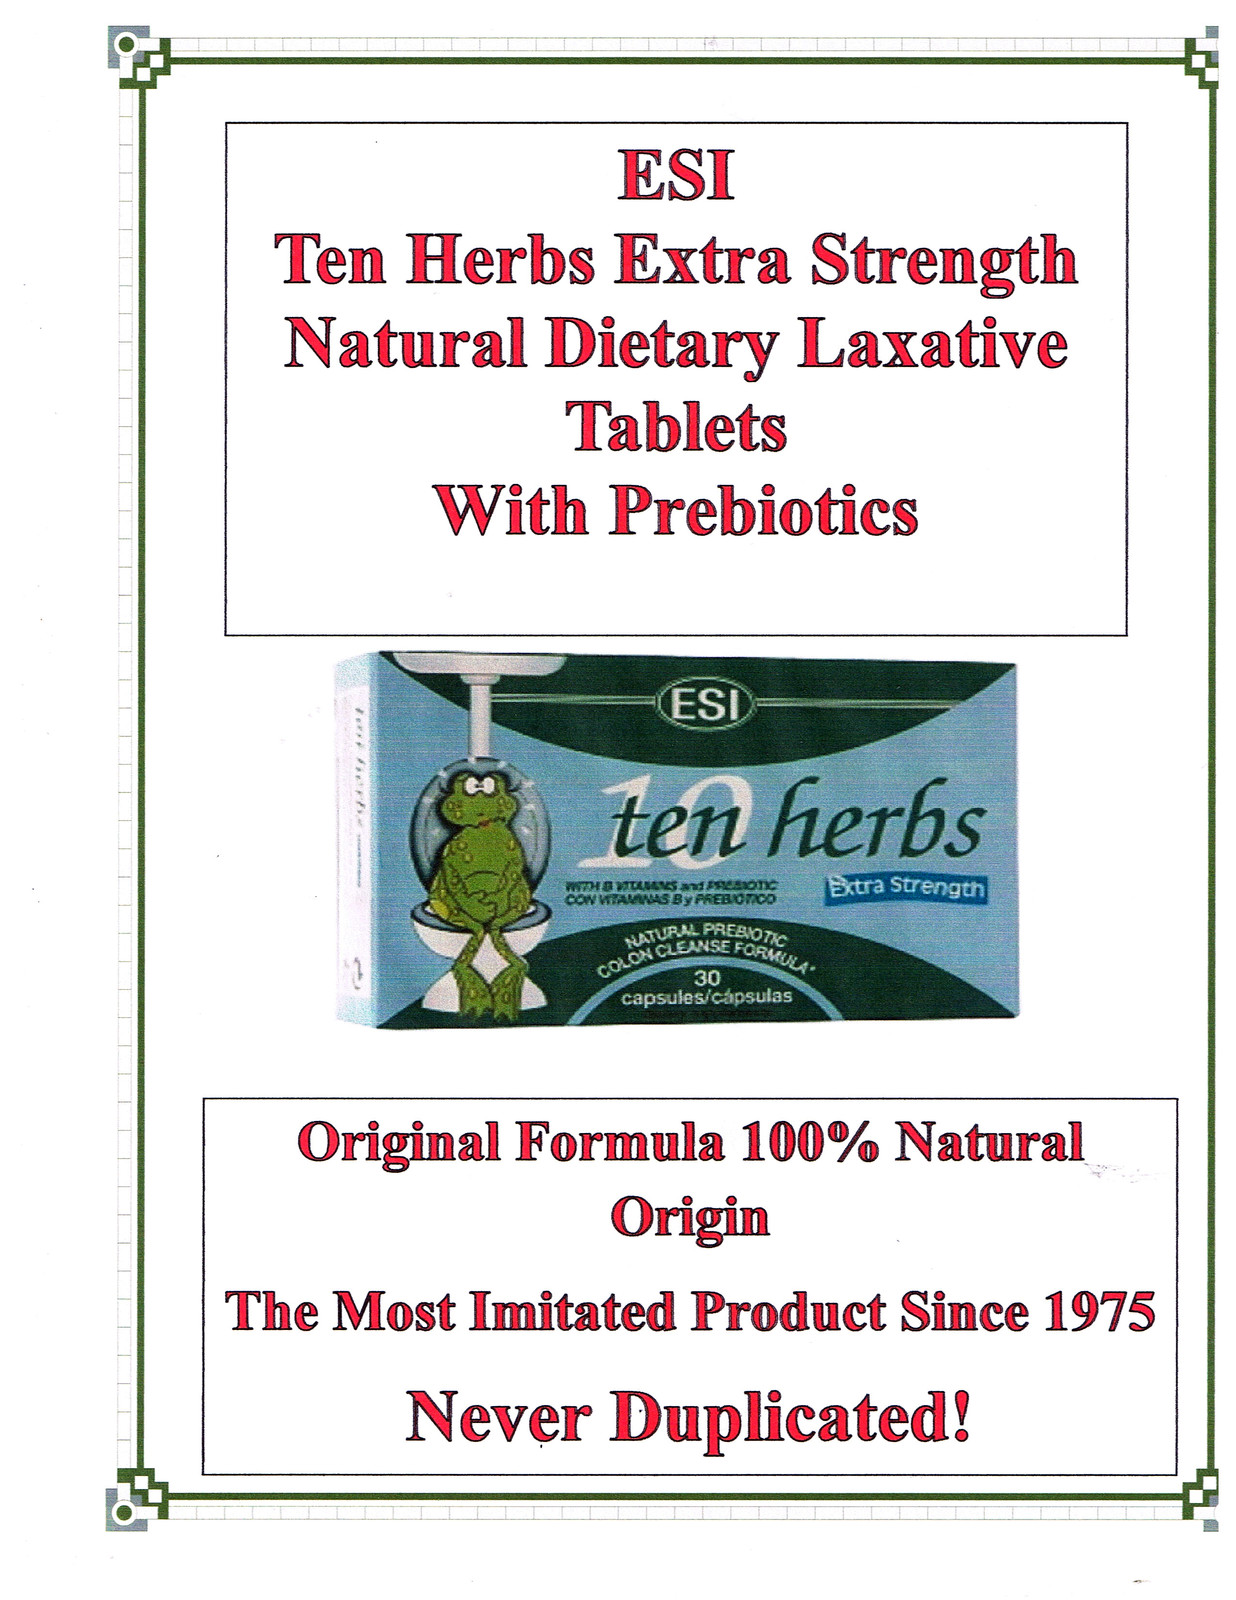 10 herbs extra stregnth